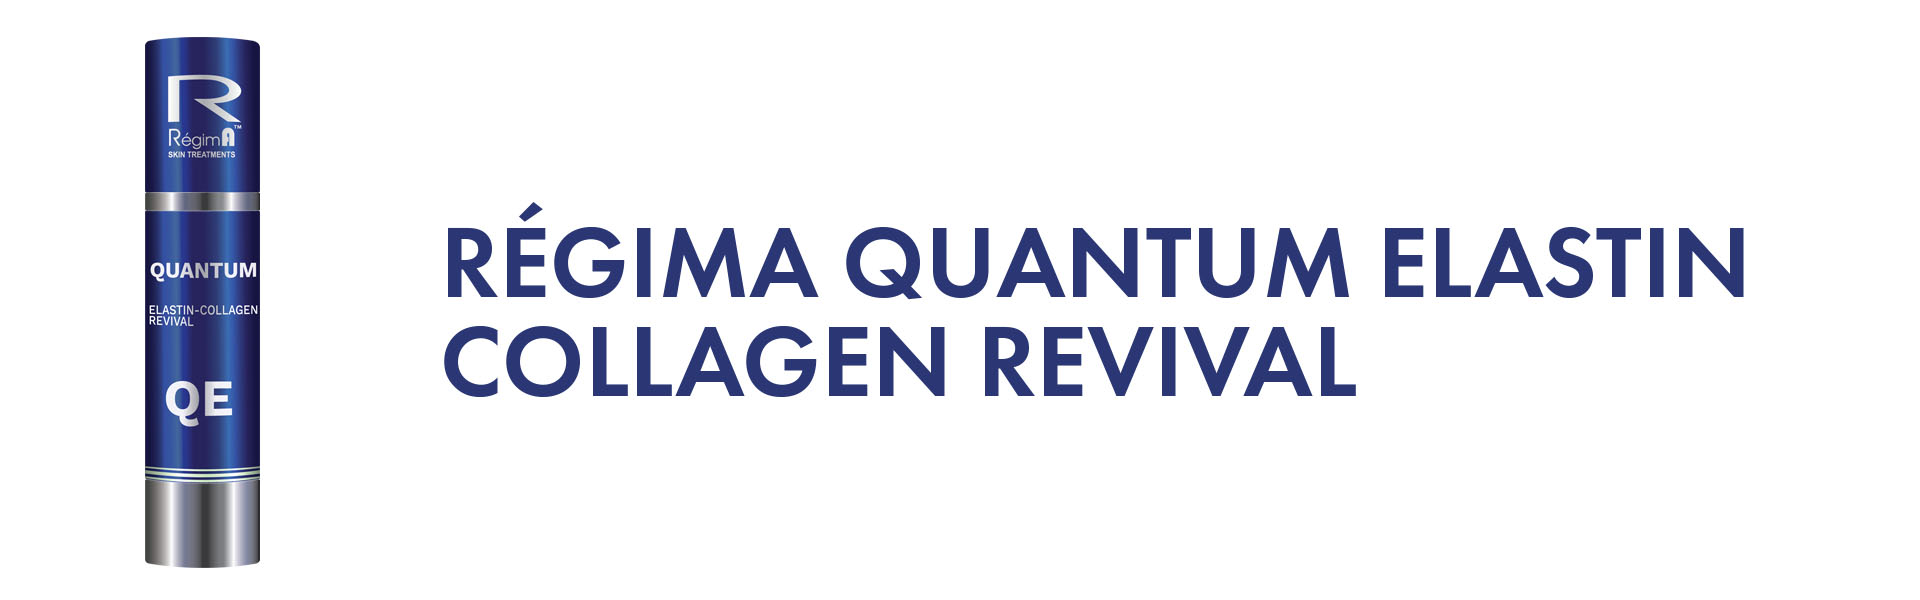 RégimA Quantum Elastin Collagen Revival